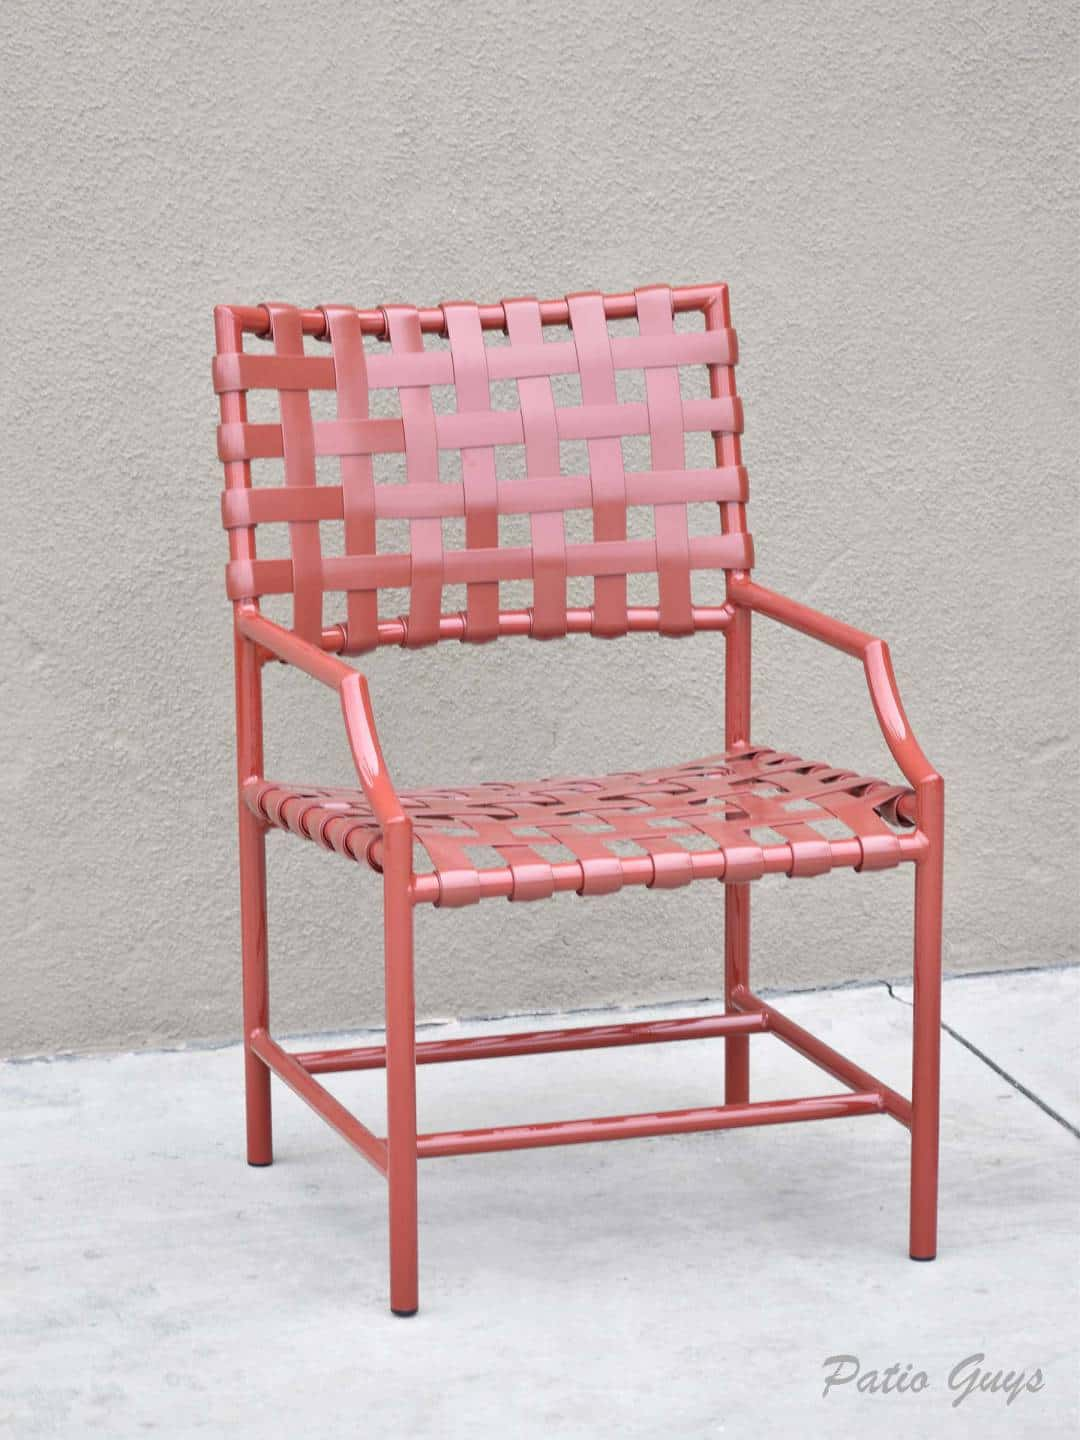 Terra Cotta strap cantina chair